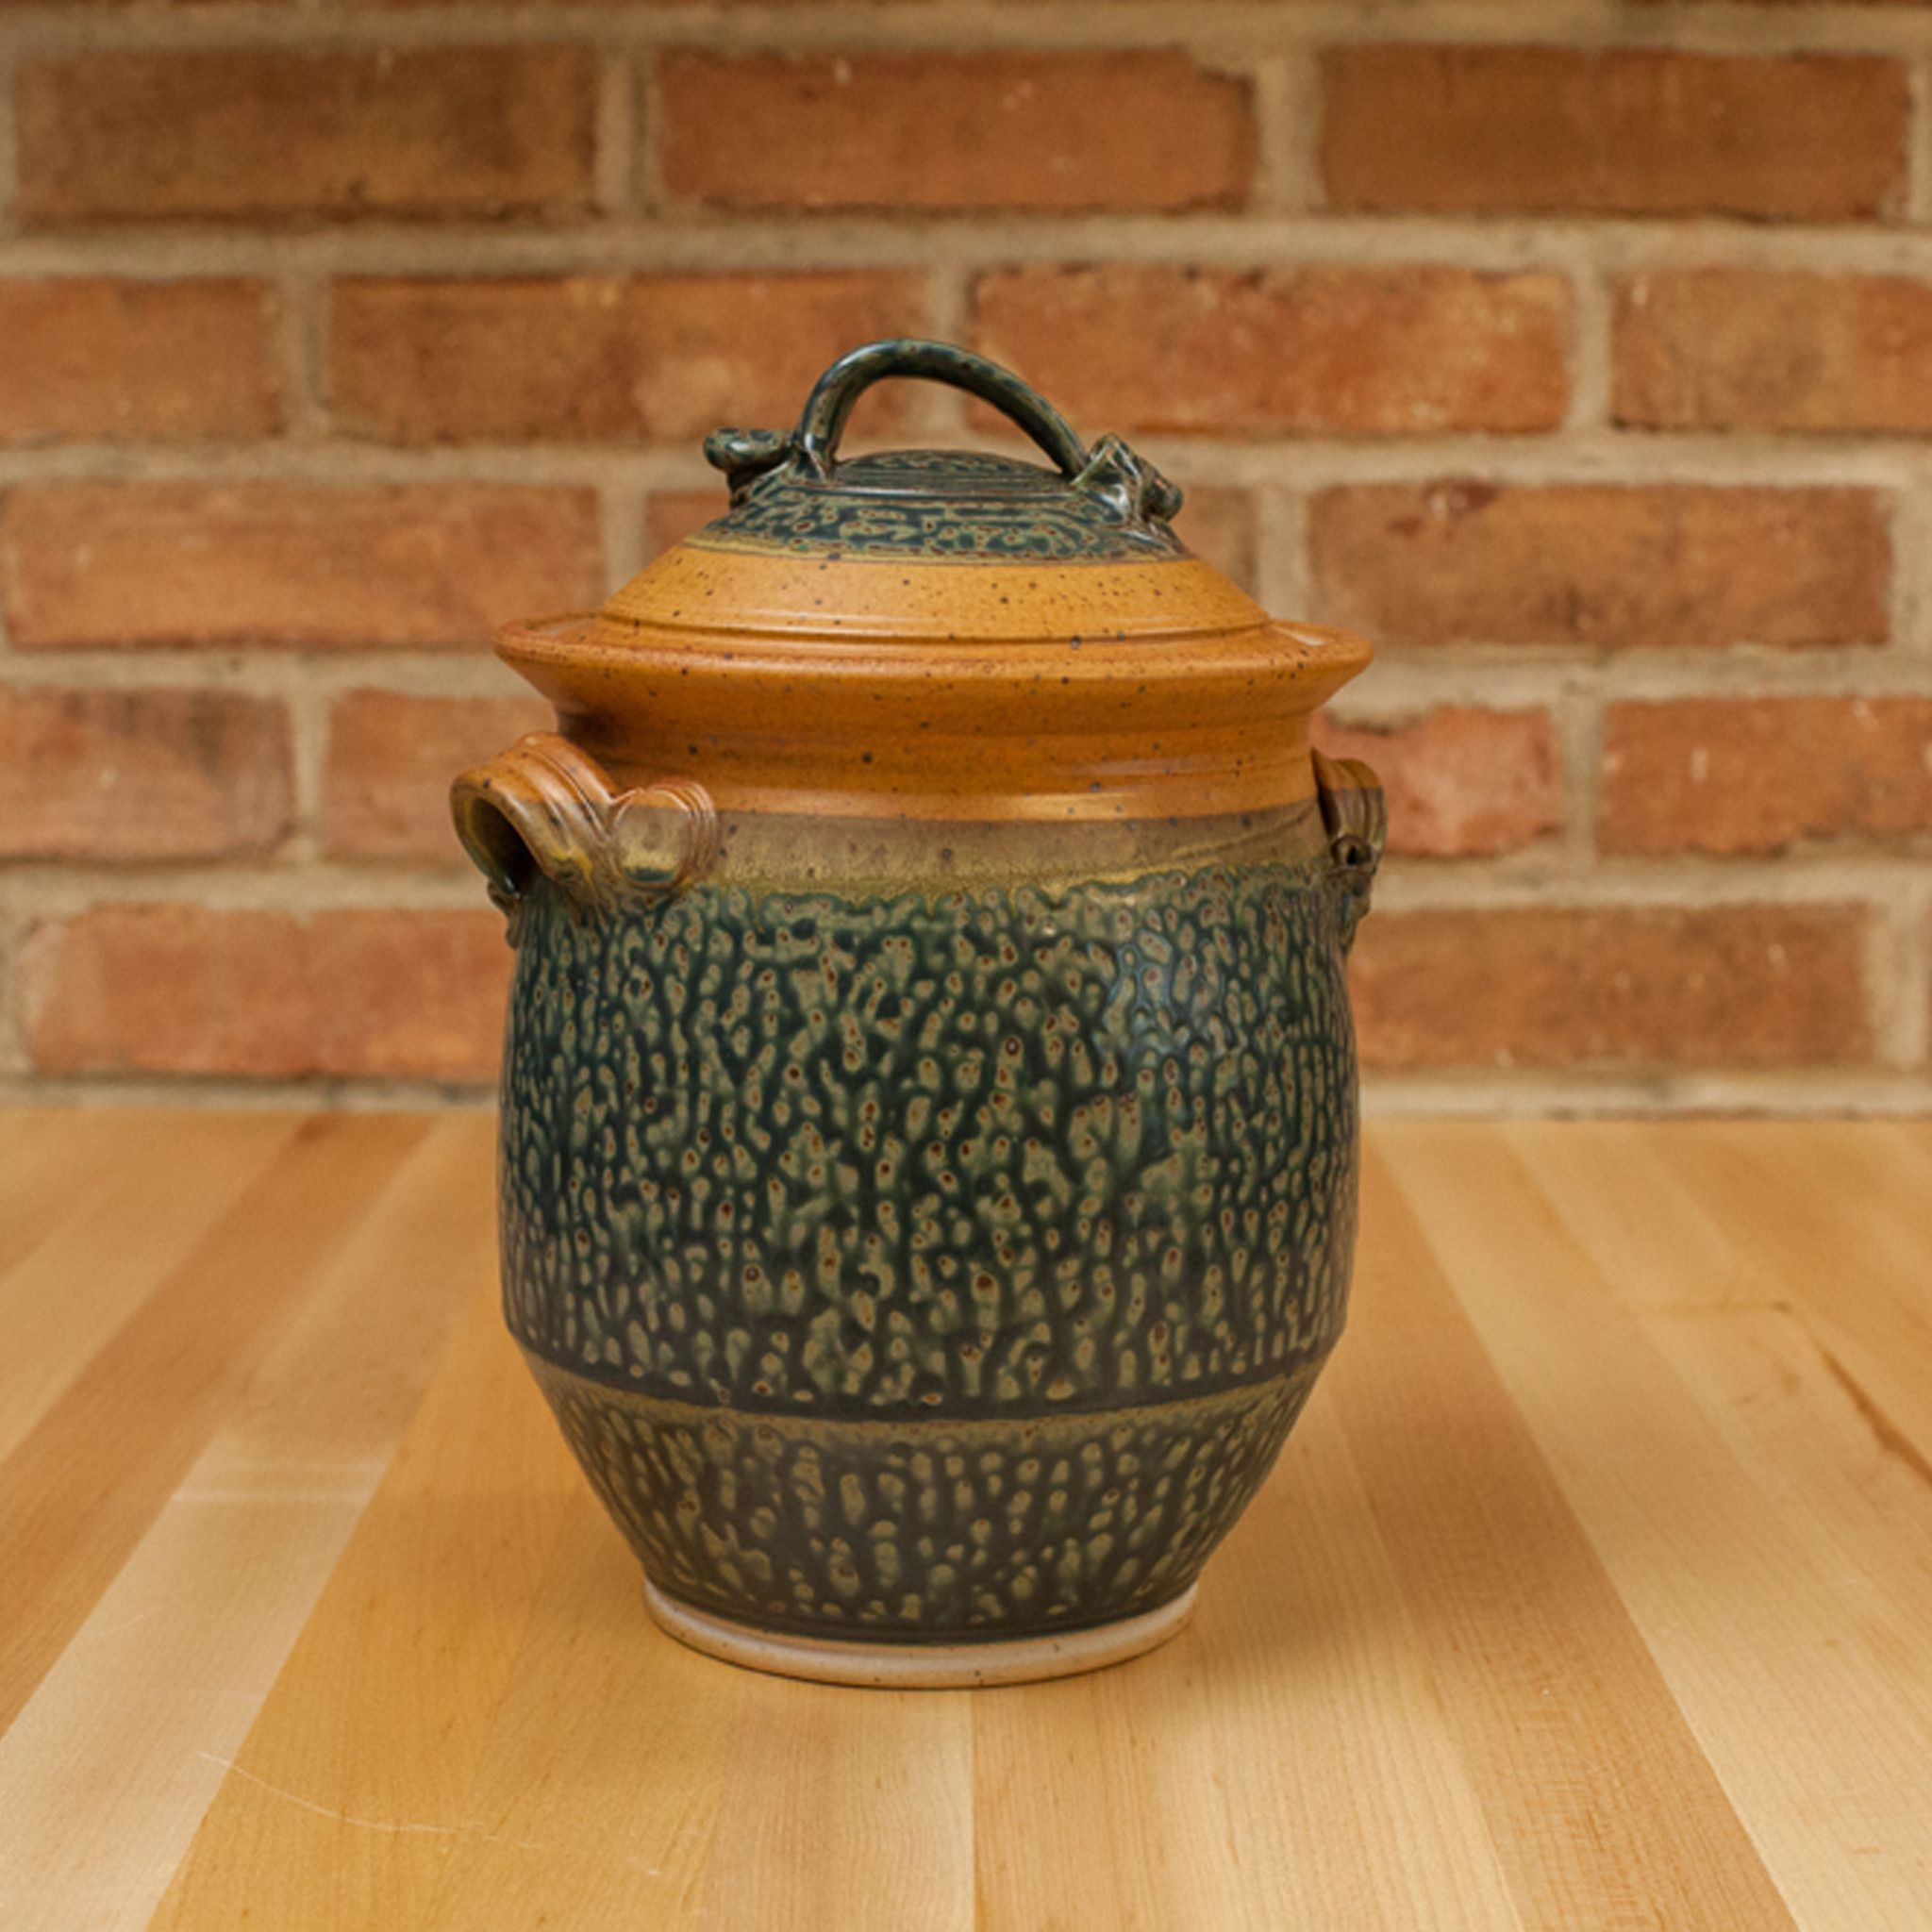 Ceramic Cookie Jar Sets Cookie Jar In Tan Ash Glaze Lidded Ceramics